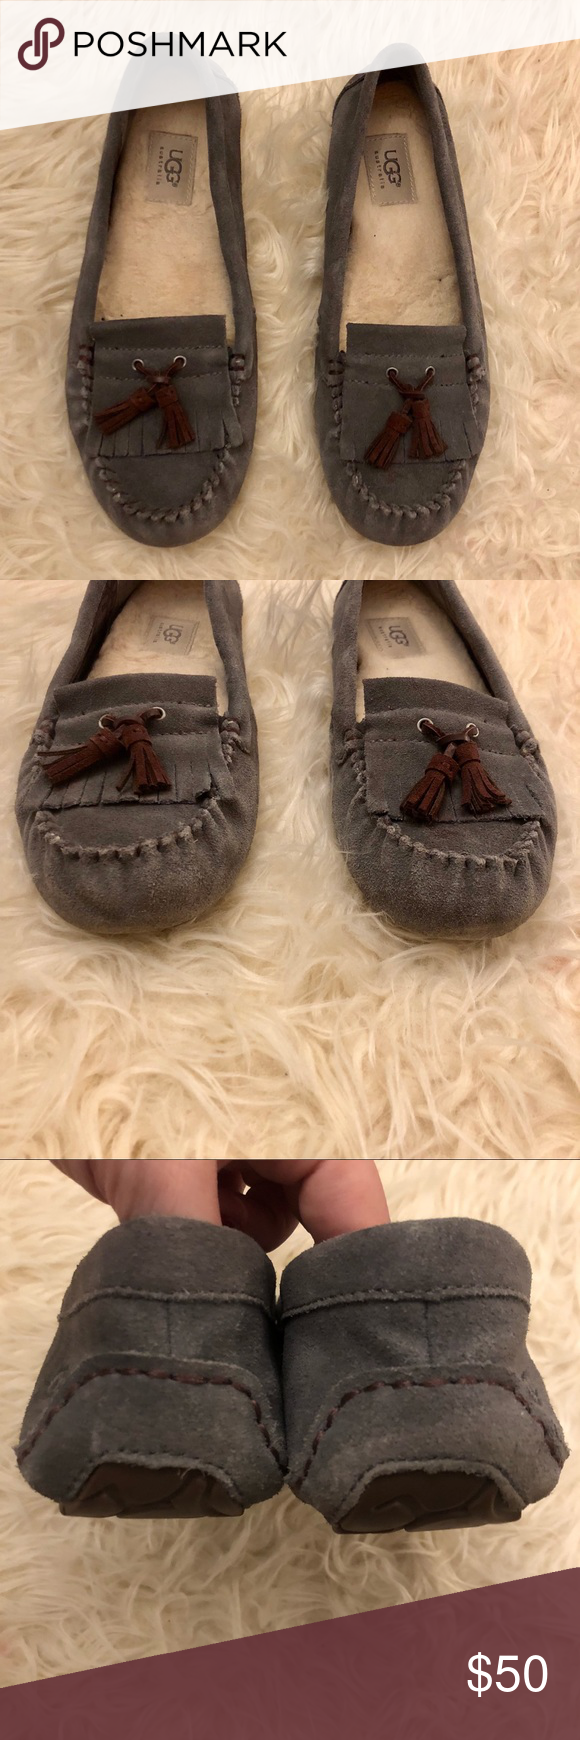 f82d11b6b49 UGG Gray Lizzy Moccasin Slipper Brand: UGG Size: Women's 10 Color ...